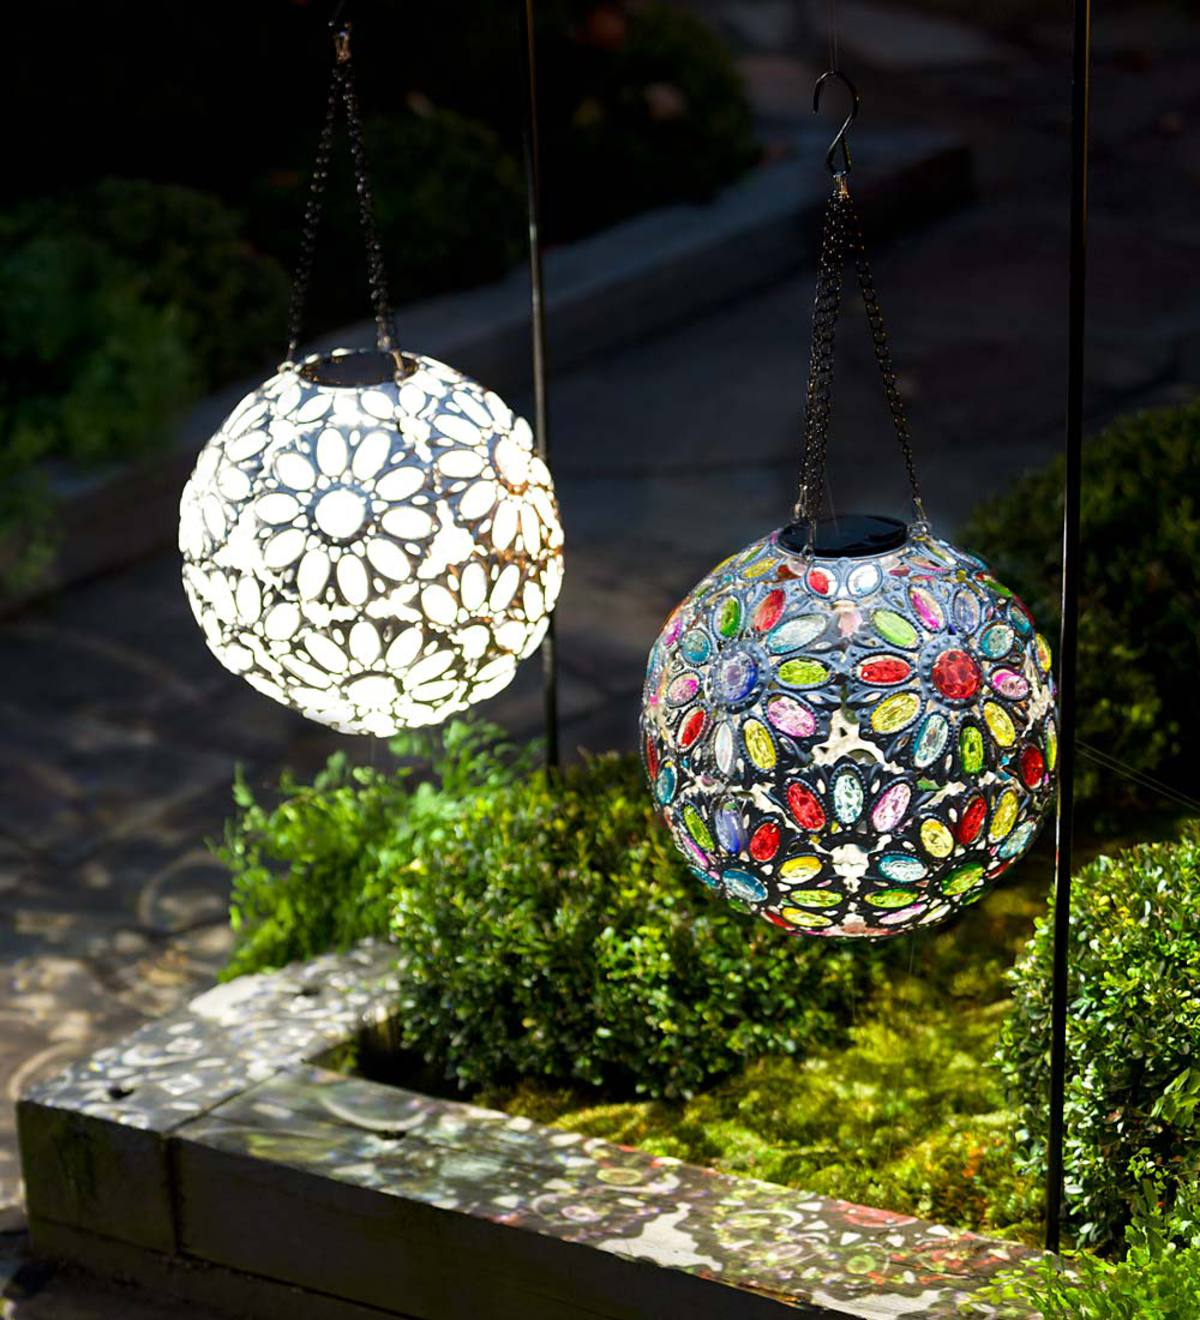 Solar Jewel Ball